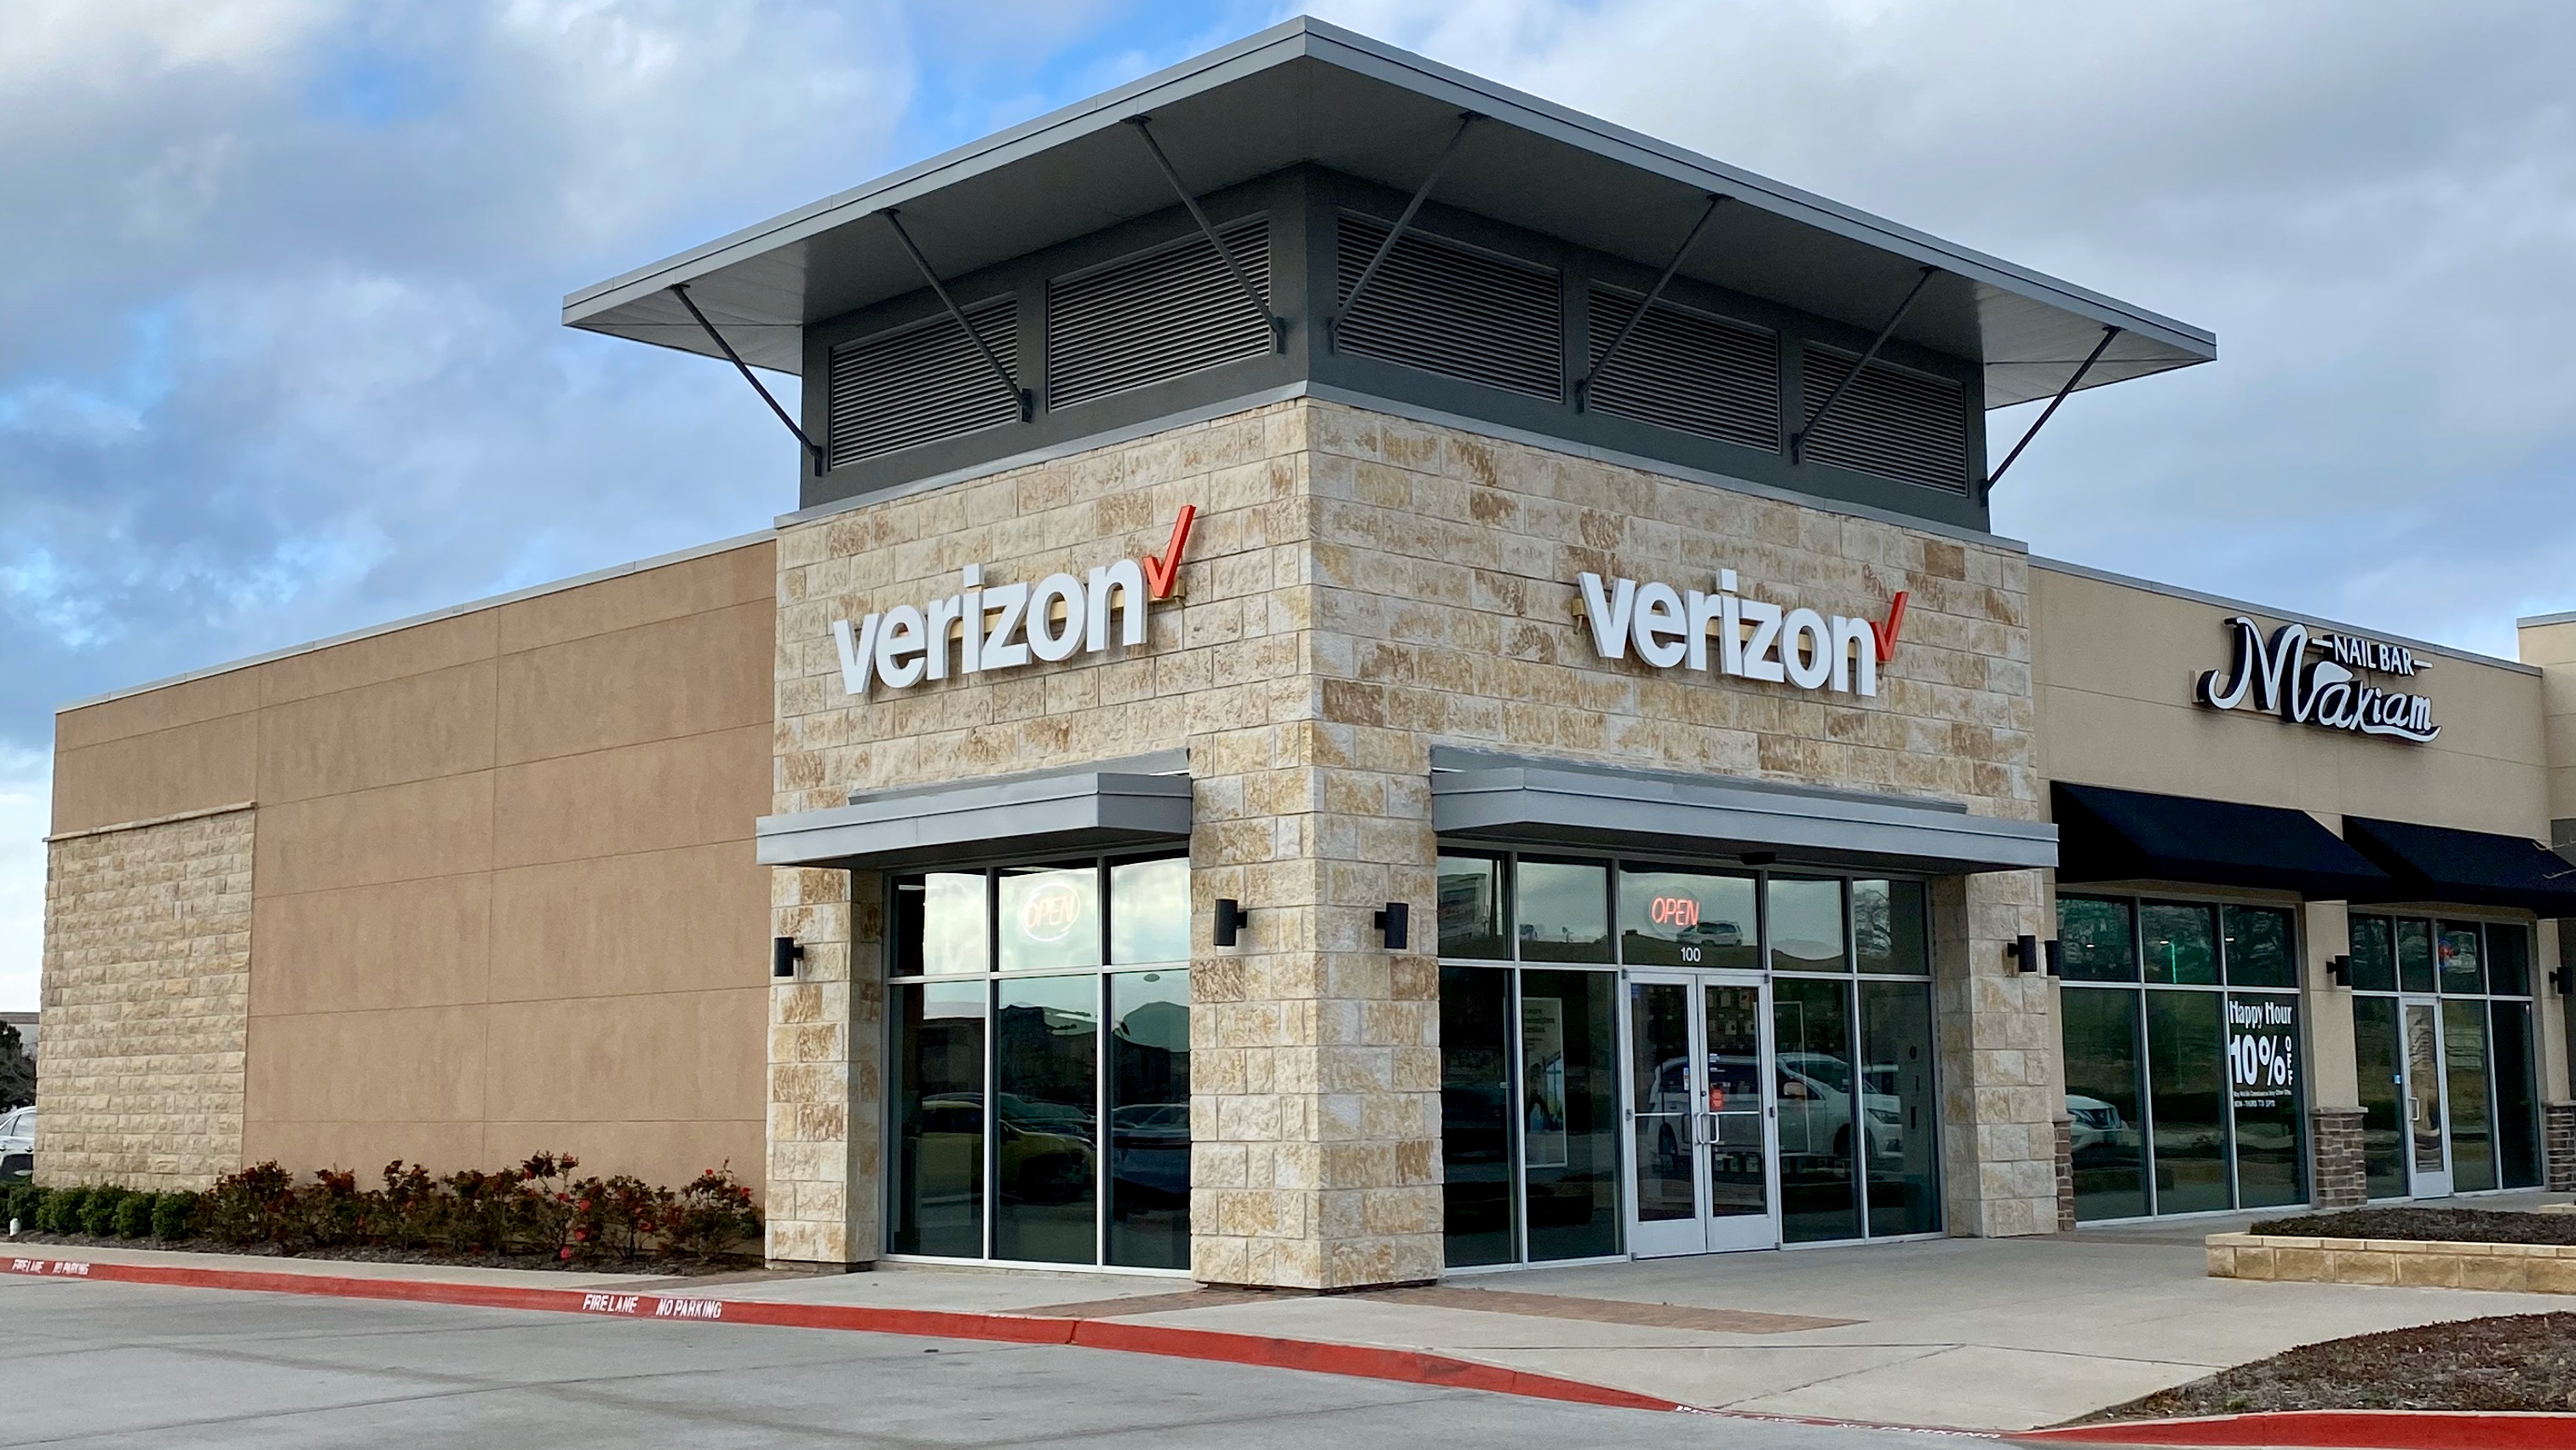 Verizon Authorized Retailer – Glade Park store image